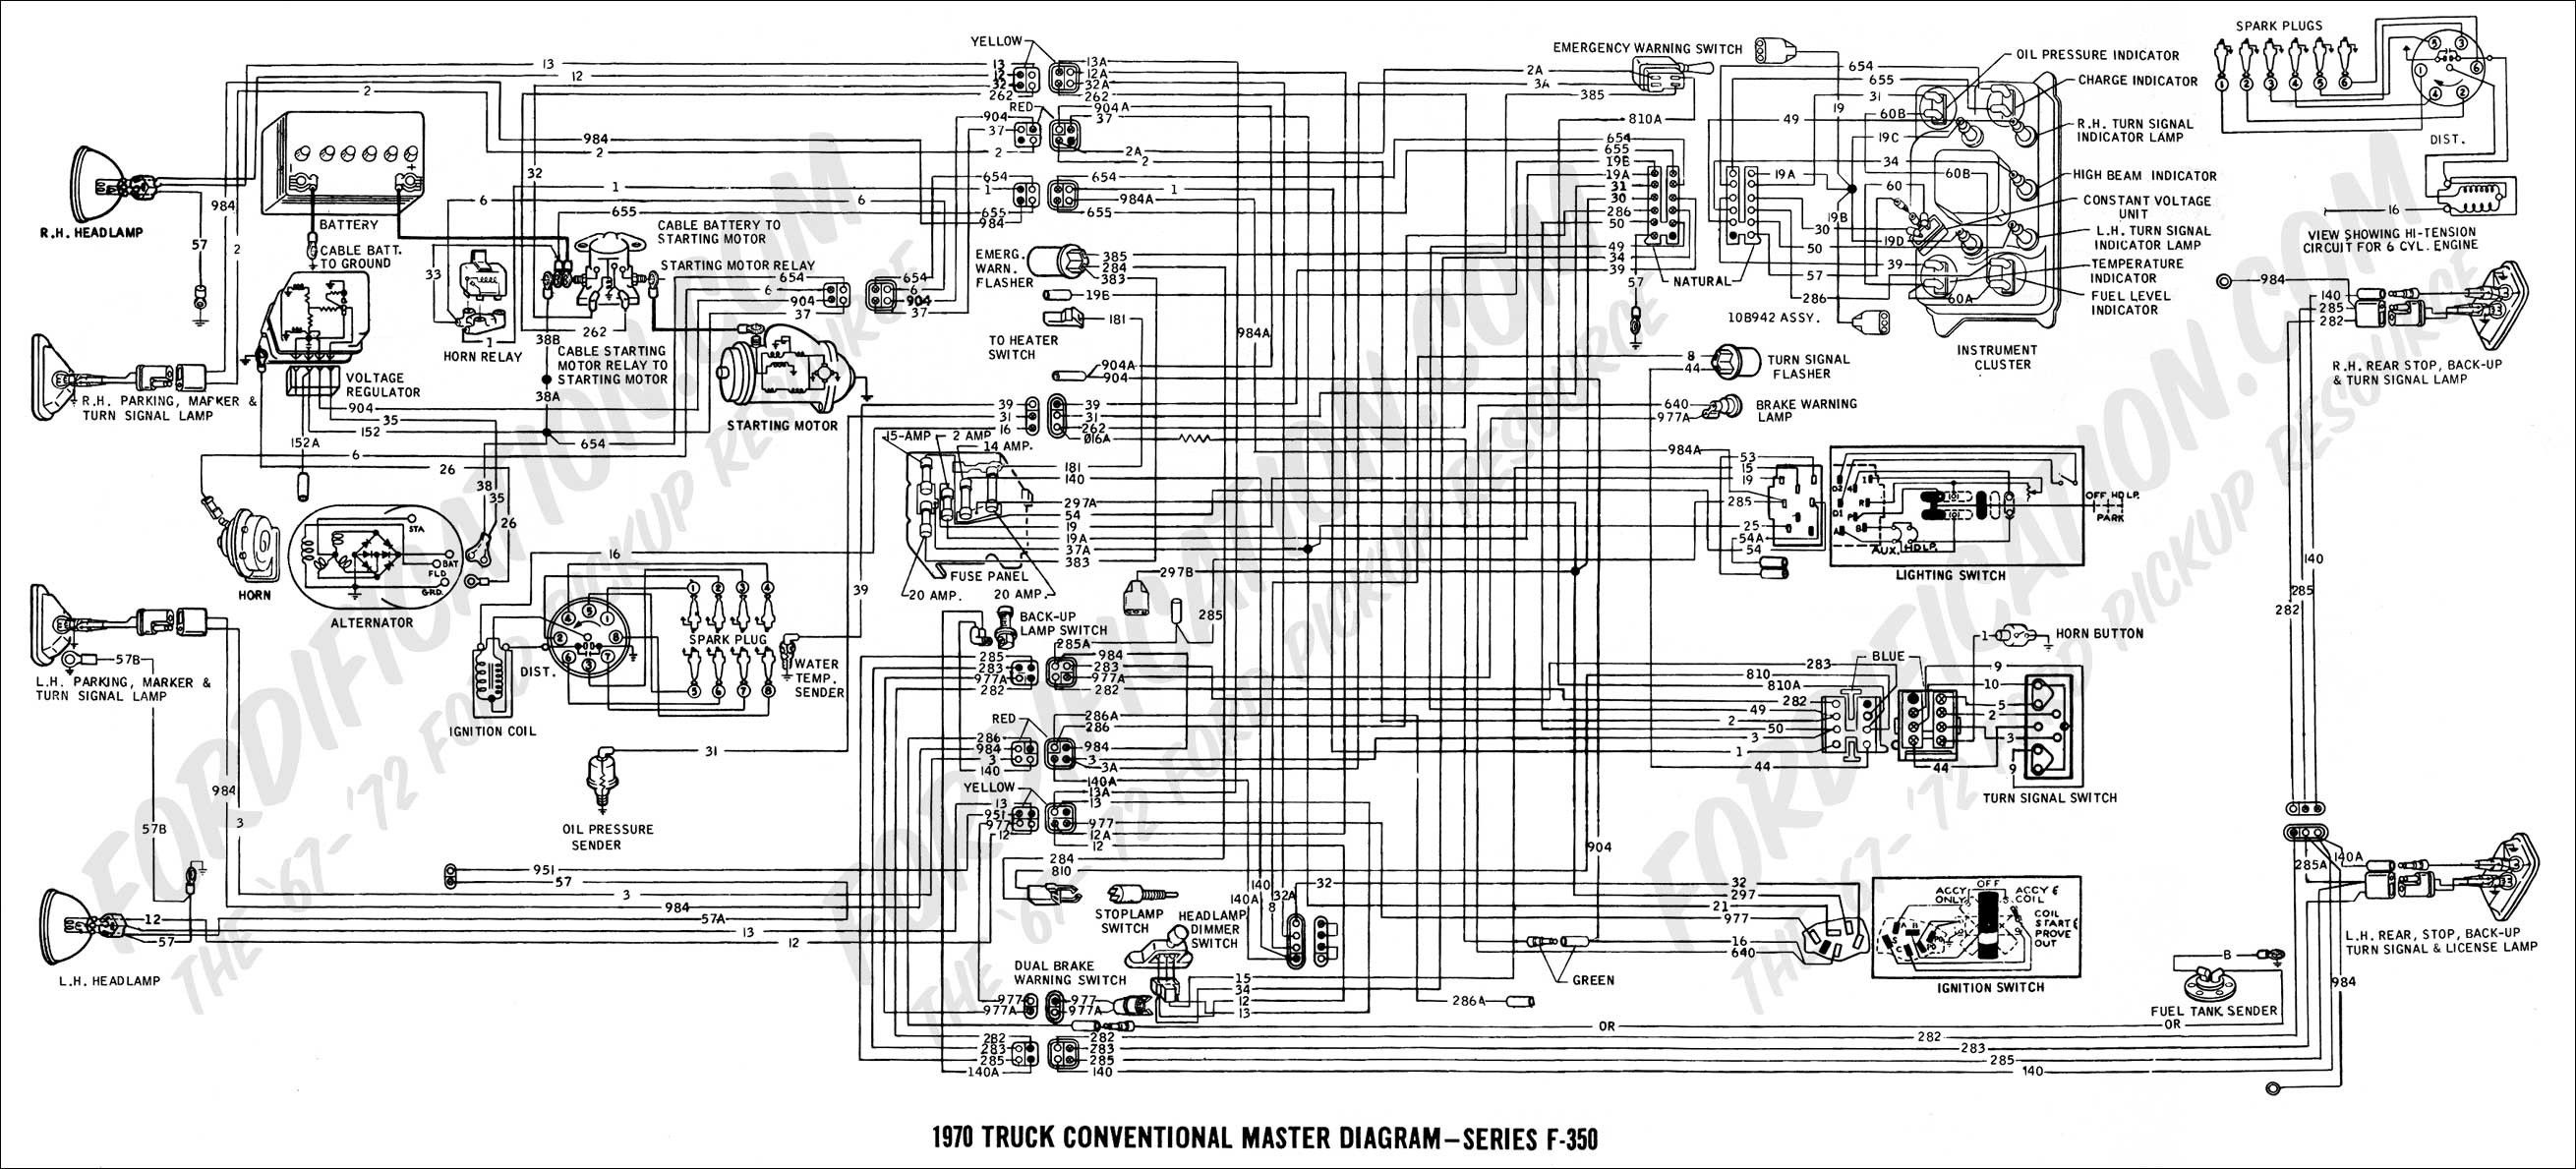 2001 Ford Van Wiring Diagram Trusted 2007 Taurus F150 2000 F 250 Also 2006 Rh Detoxicrecenze Com